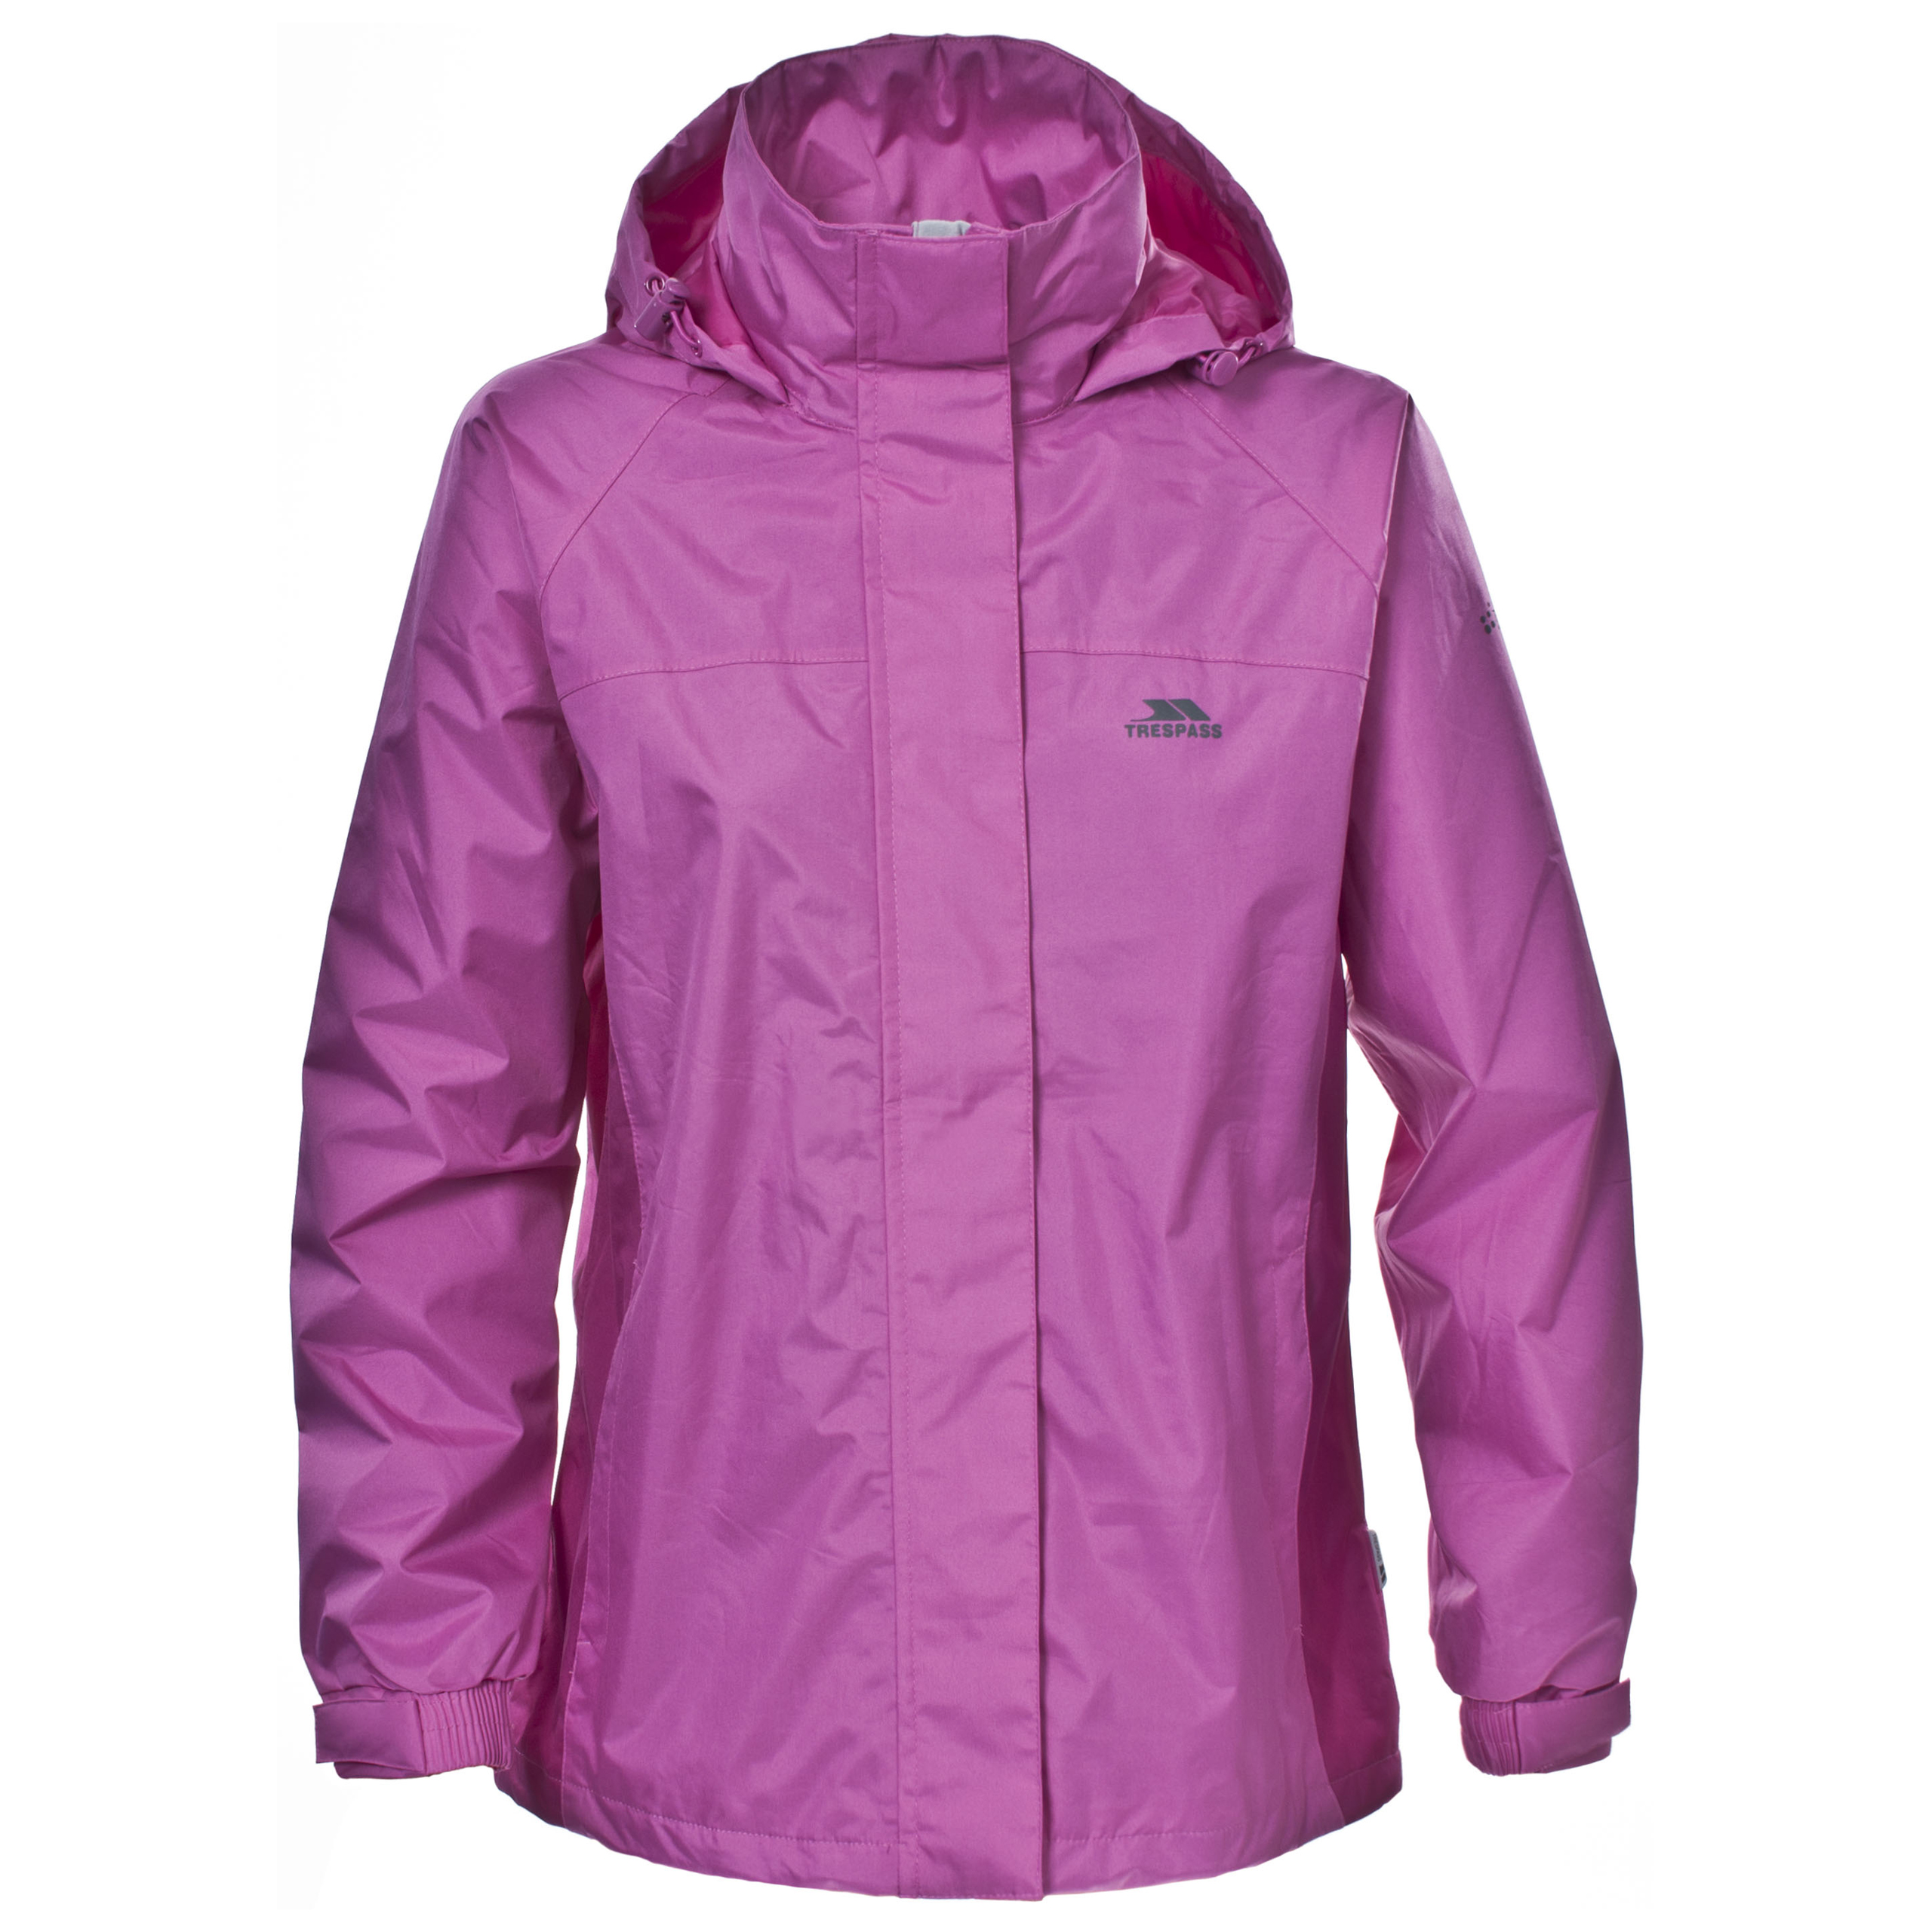 Best womens rain jackets